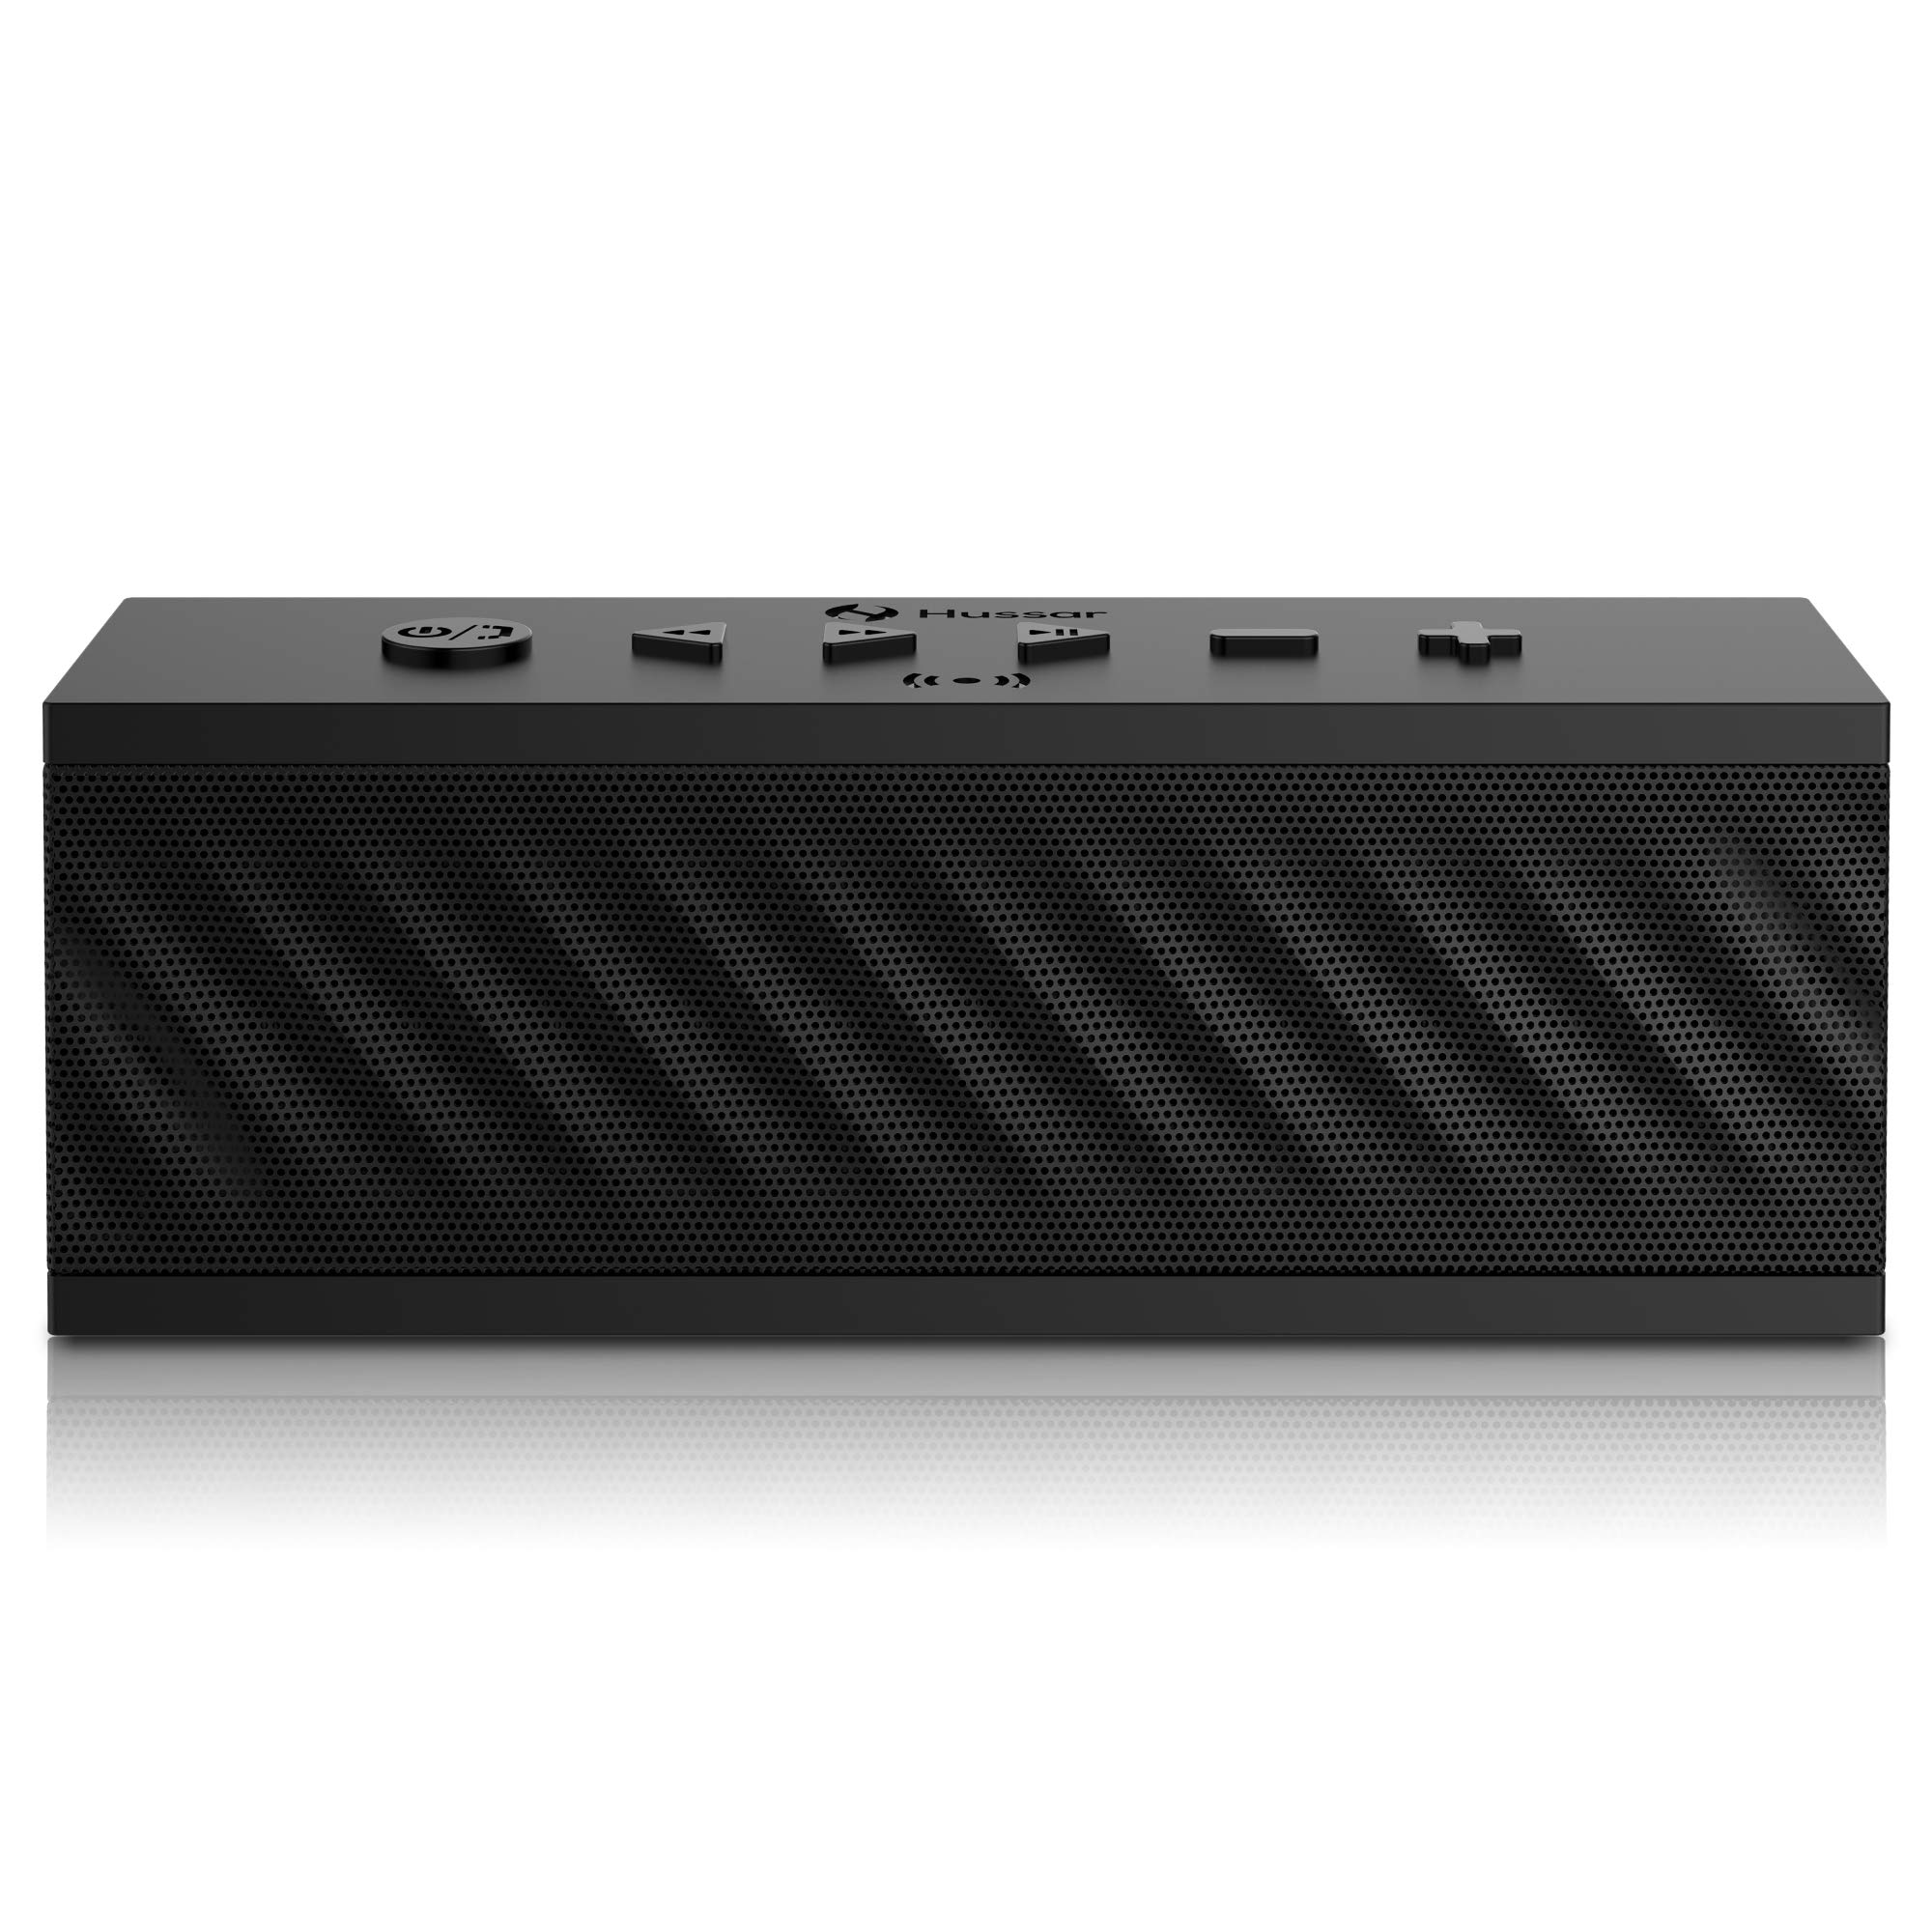 HUSSAR Bluetooth Speakers, 16W Portable Wireless Speaker, Premium Sound with Enhanced Bass and Selectable Sound Effects, IPX5 Waterproof, Built-in Mic with Siri, Black by Hussar